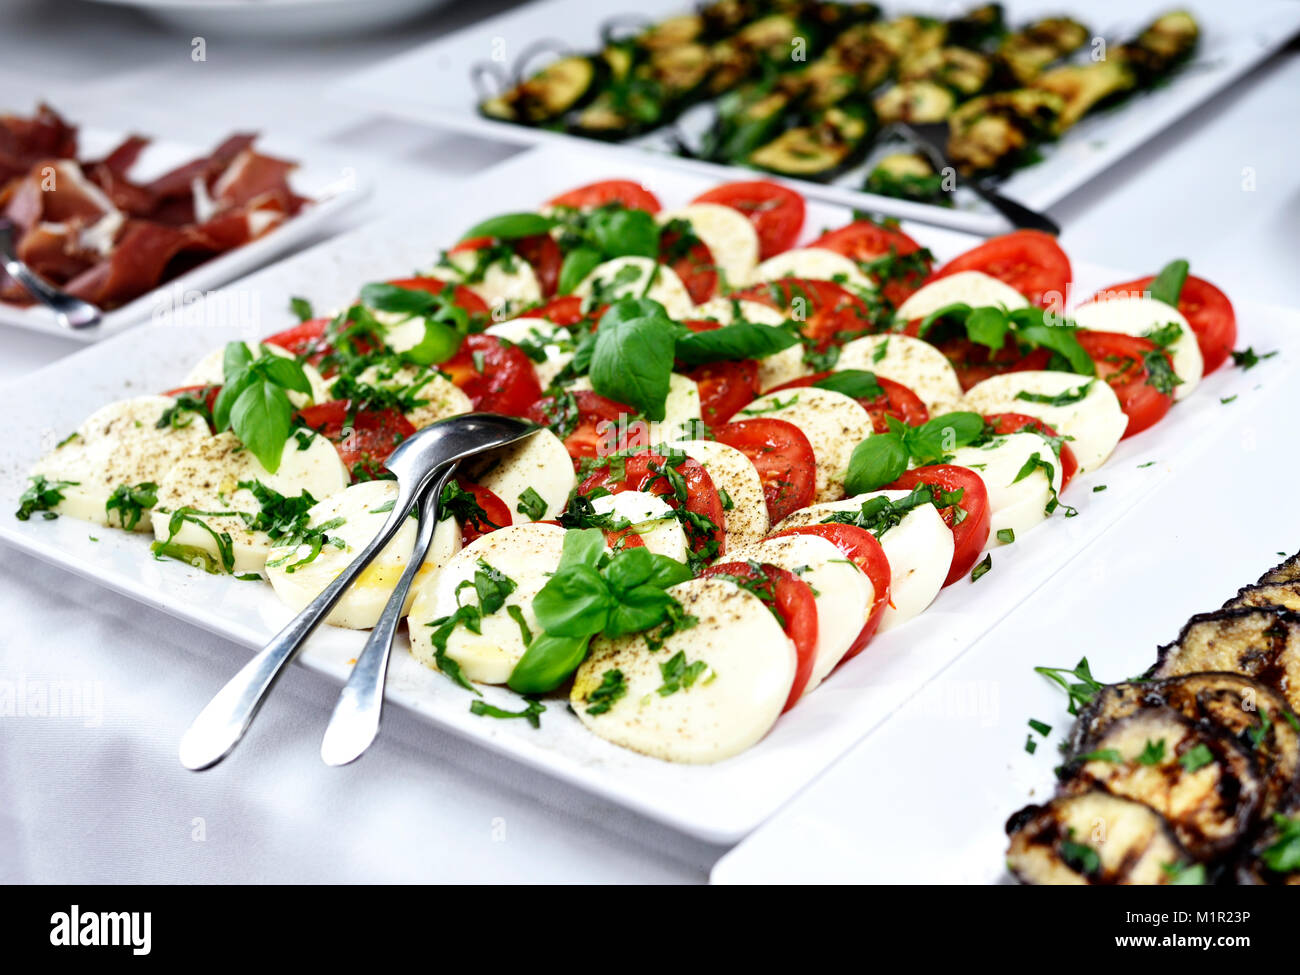 Antipasti buffet or banquet with tomato and mozzarella plate and fresh basil leaves. Wedding banquet or party buffet. - Stock Image